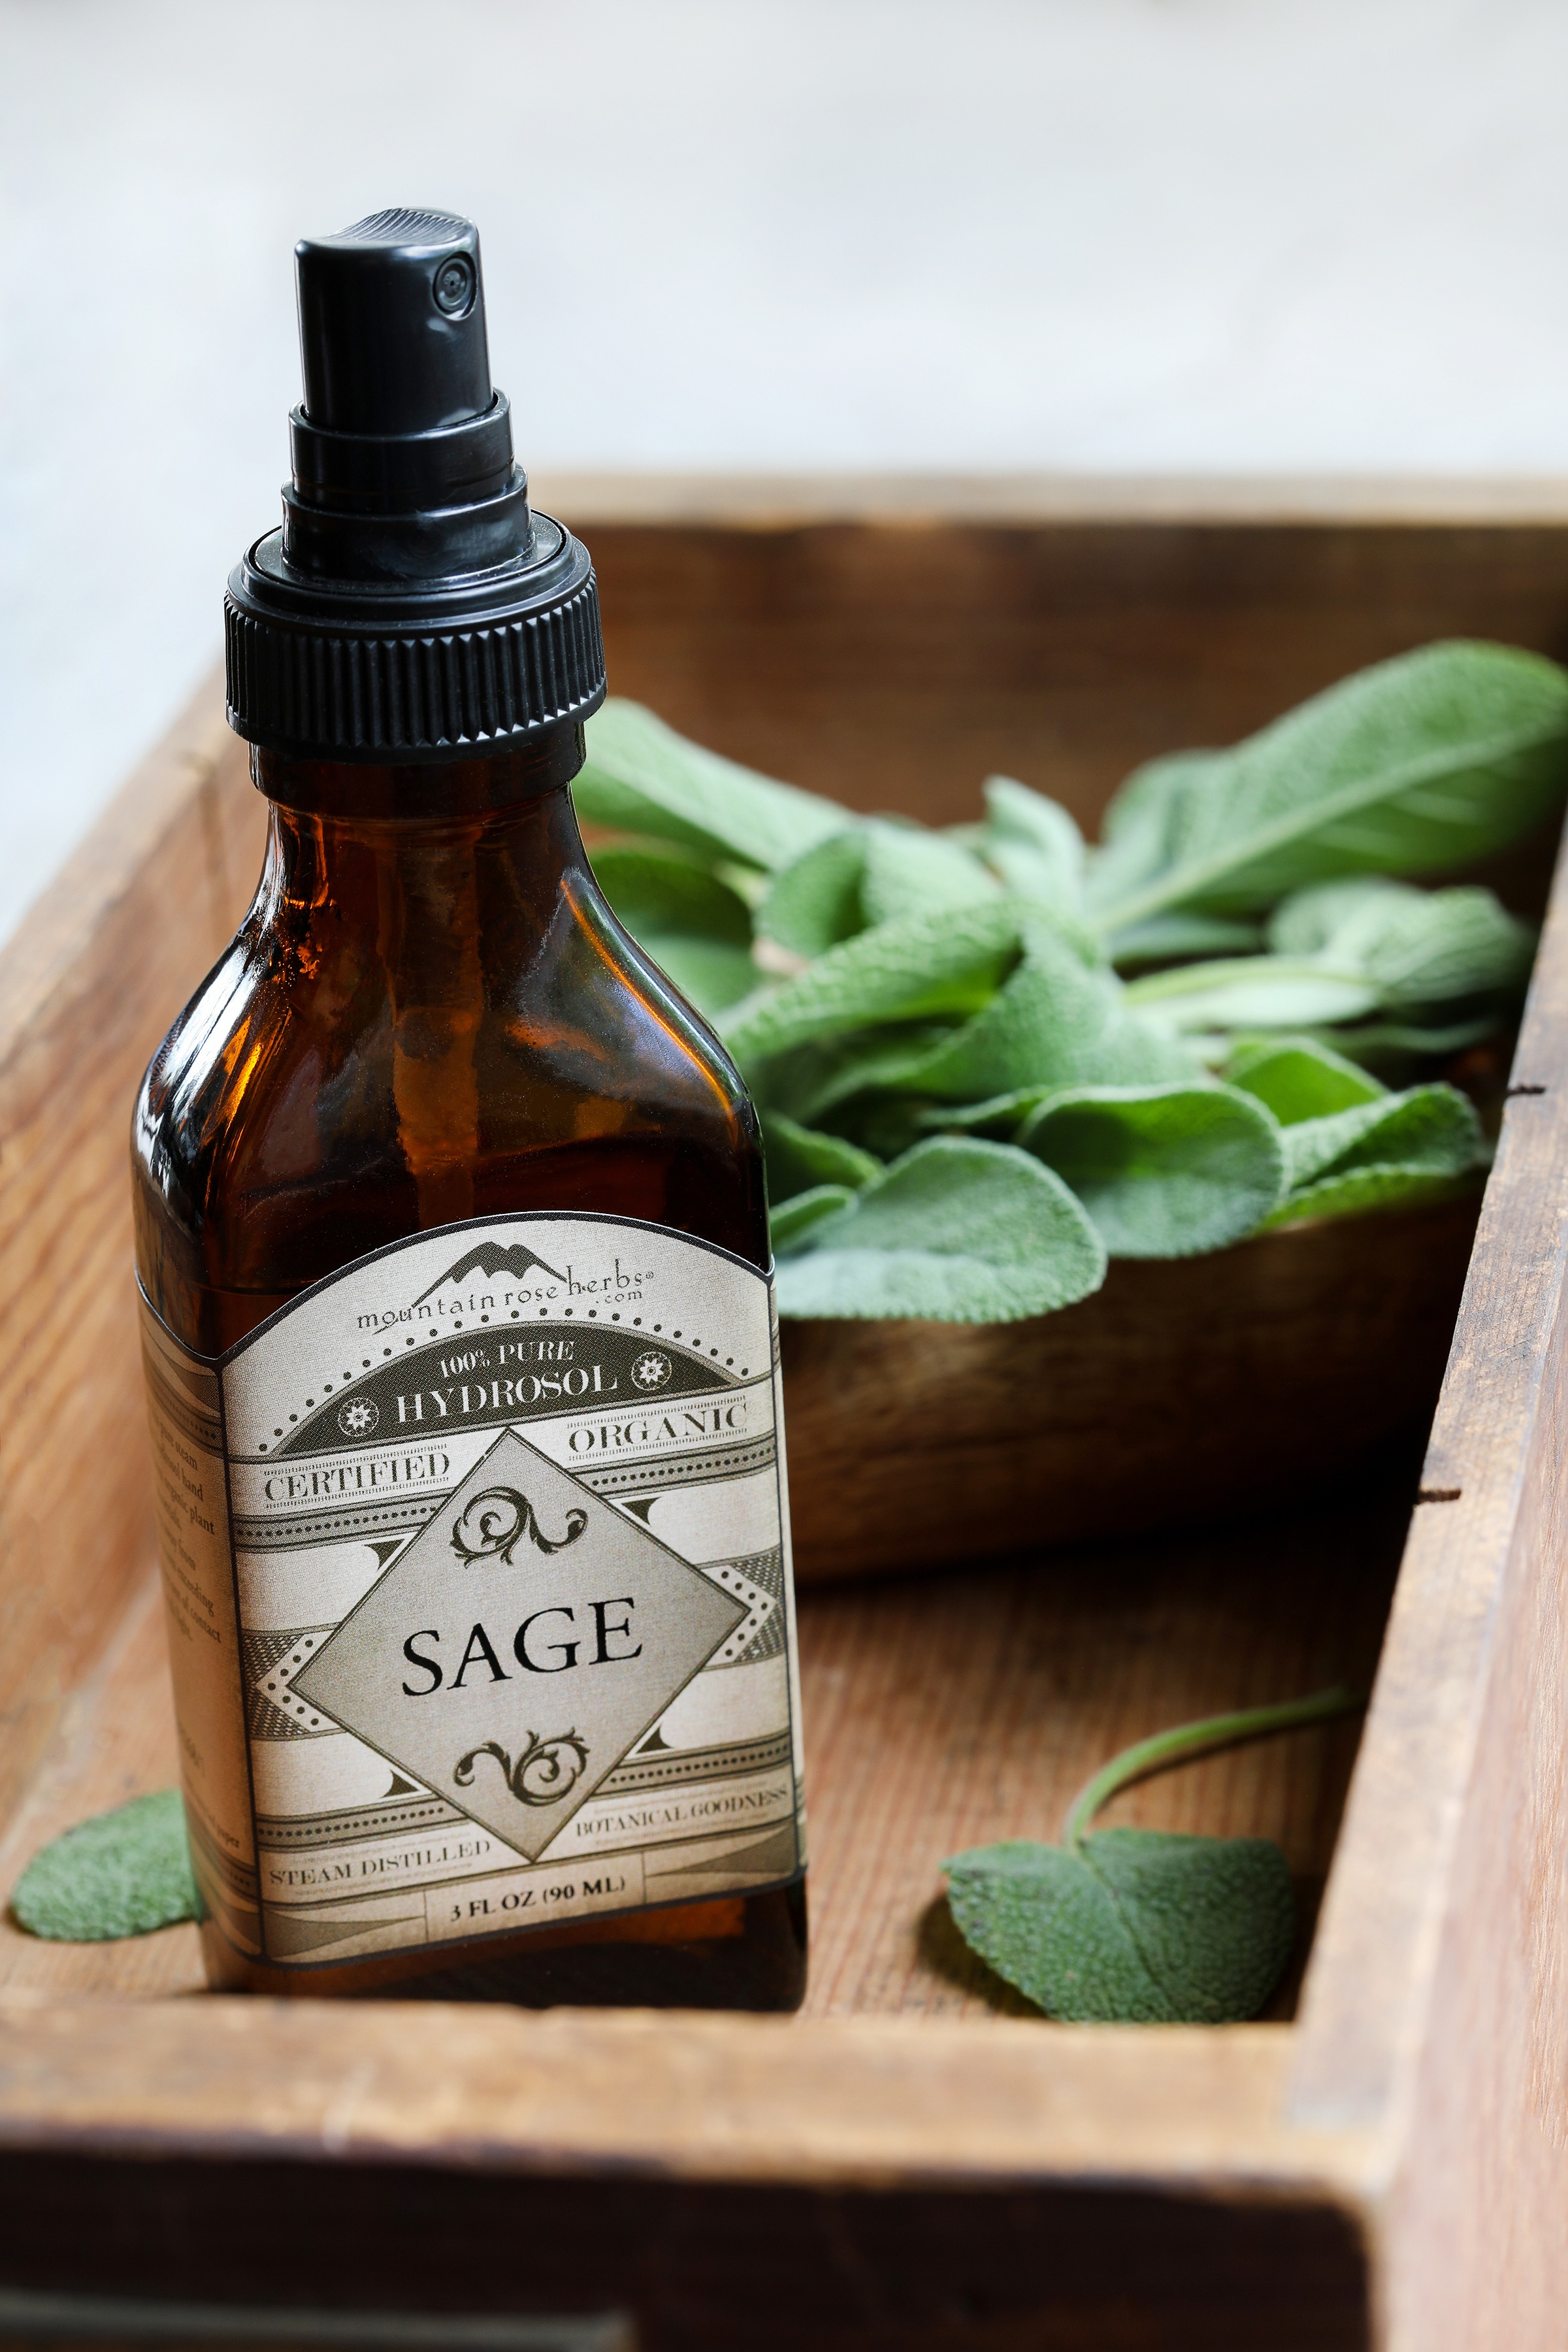 Amber mister bottle of organic sage hydrosol in shallow wooden crate with fresh sage leaves